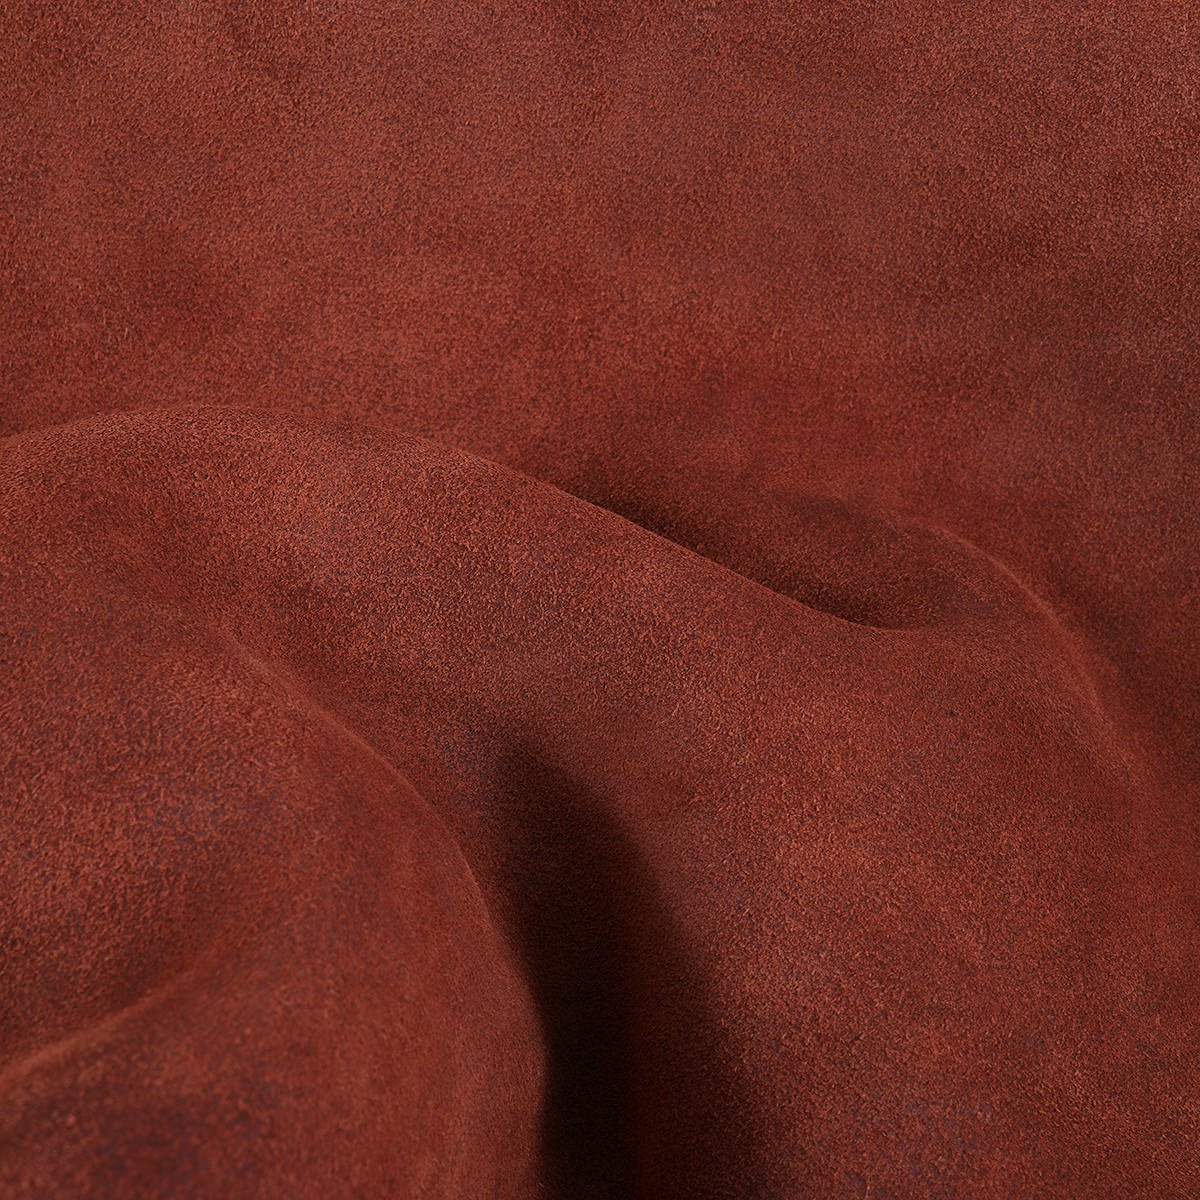 HORWEEN LEATHER COMPANY CALICO SUEDE RUST 詳細画像4